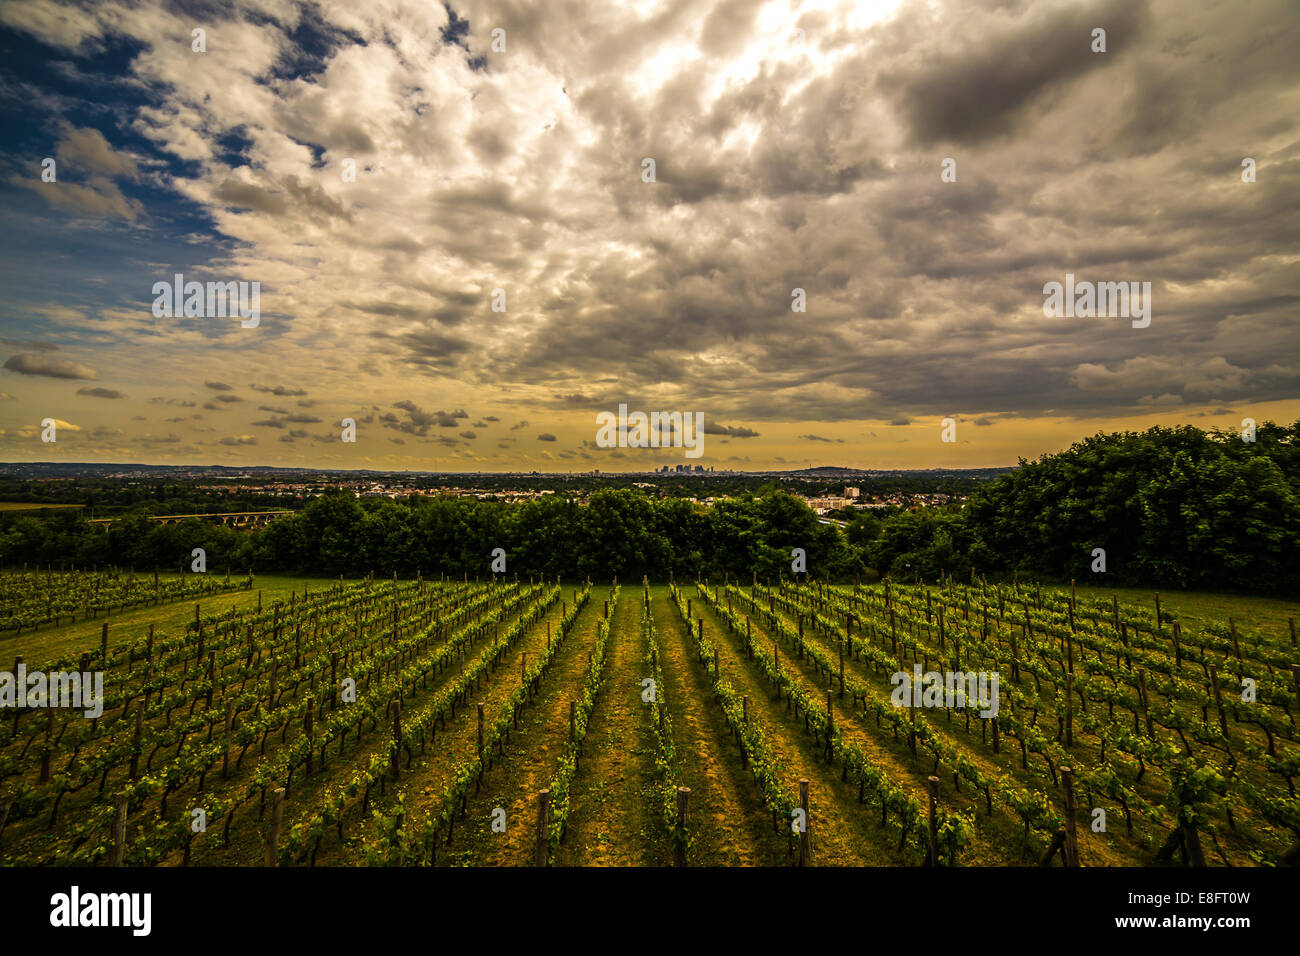 France, Paris, La Defense behind vines - Stock Image